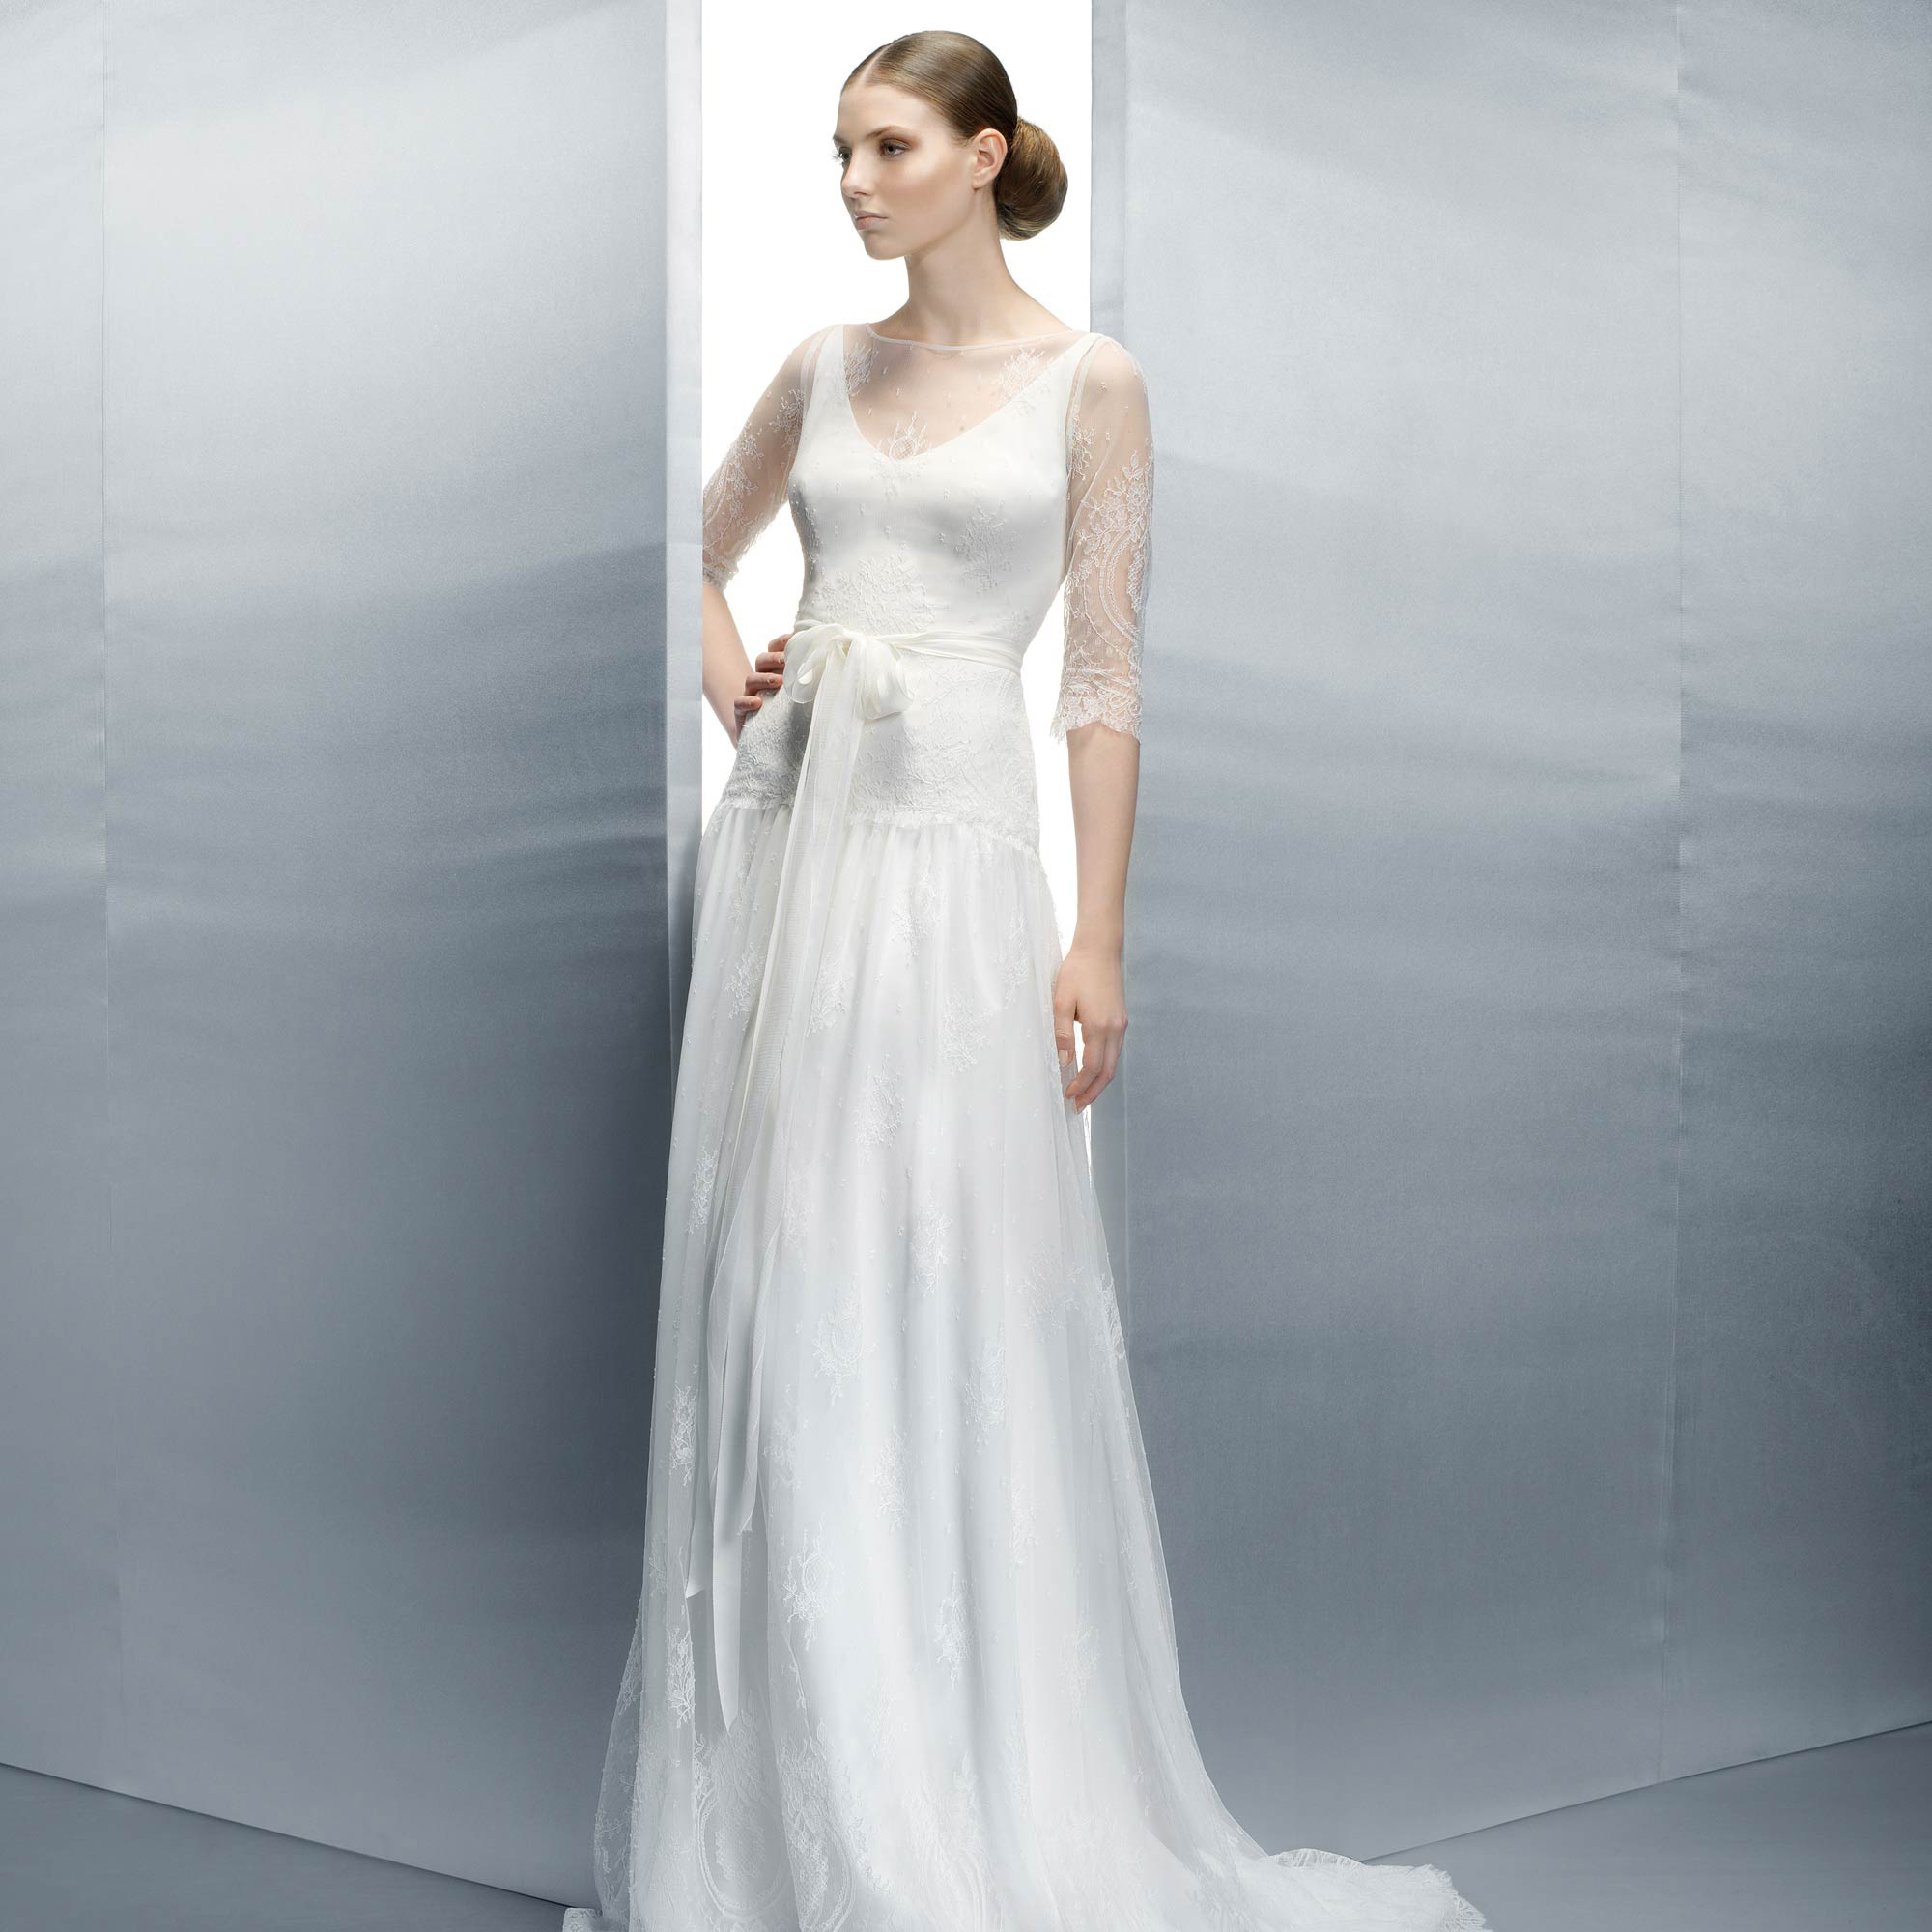 Jesus Peiro 2012 Spring Summer Bridal Collection (II) | The ...